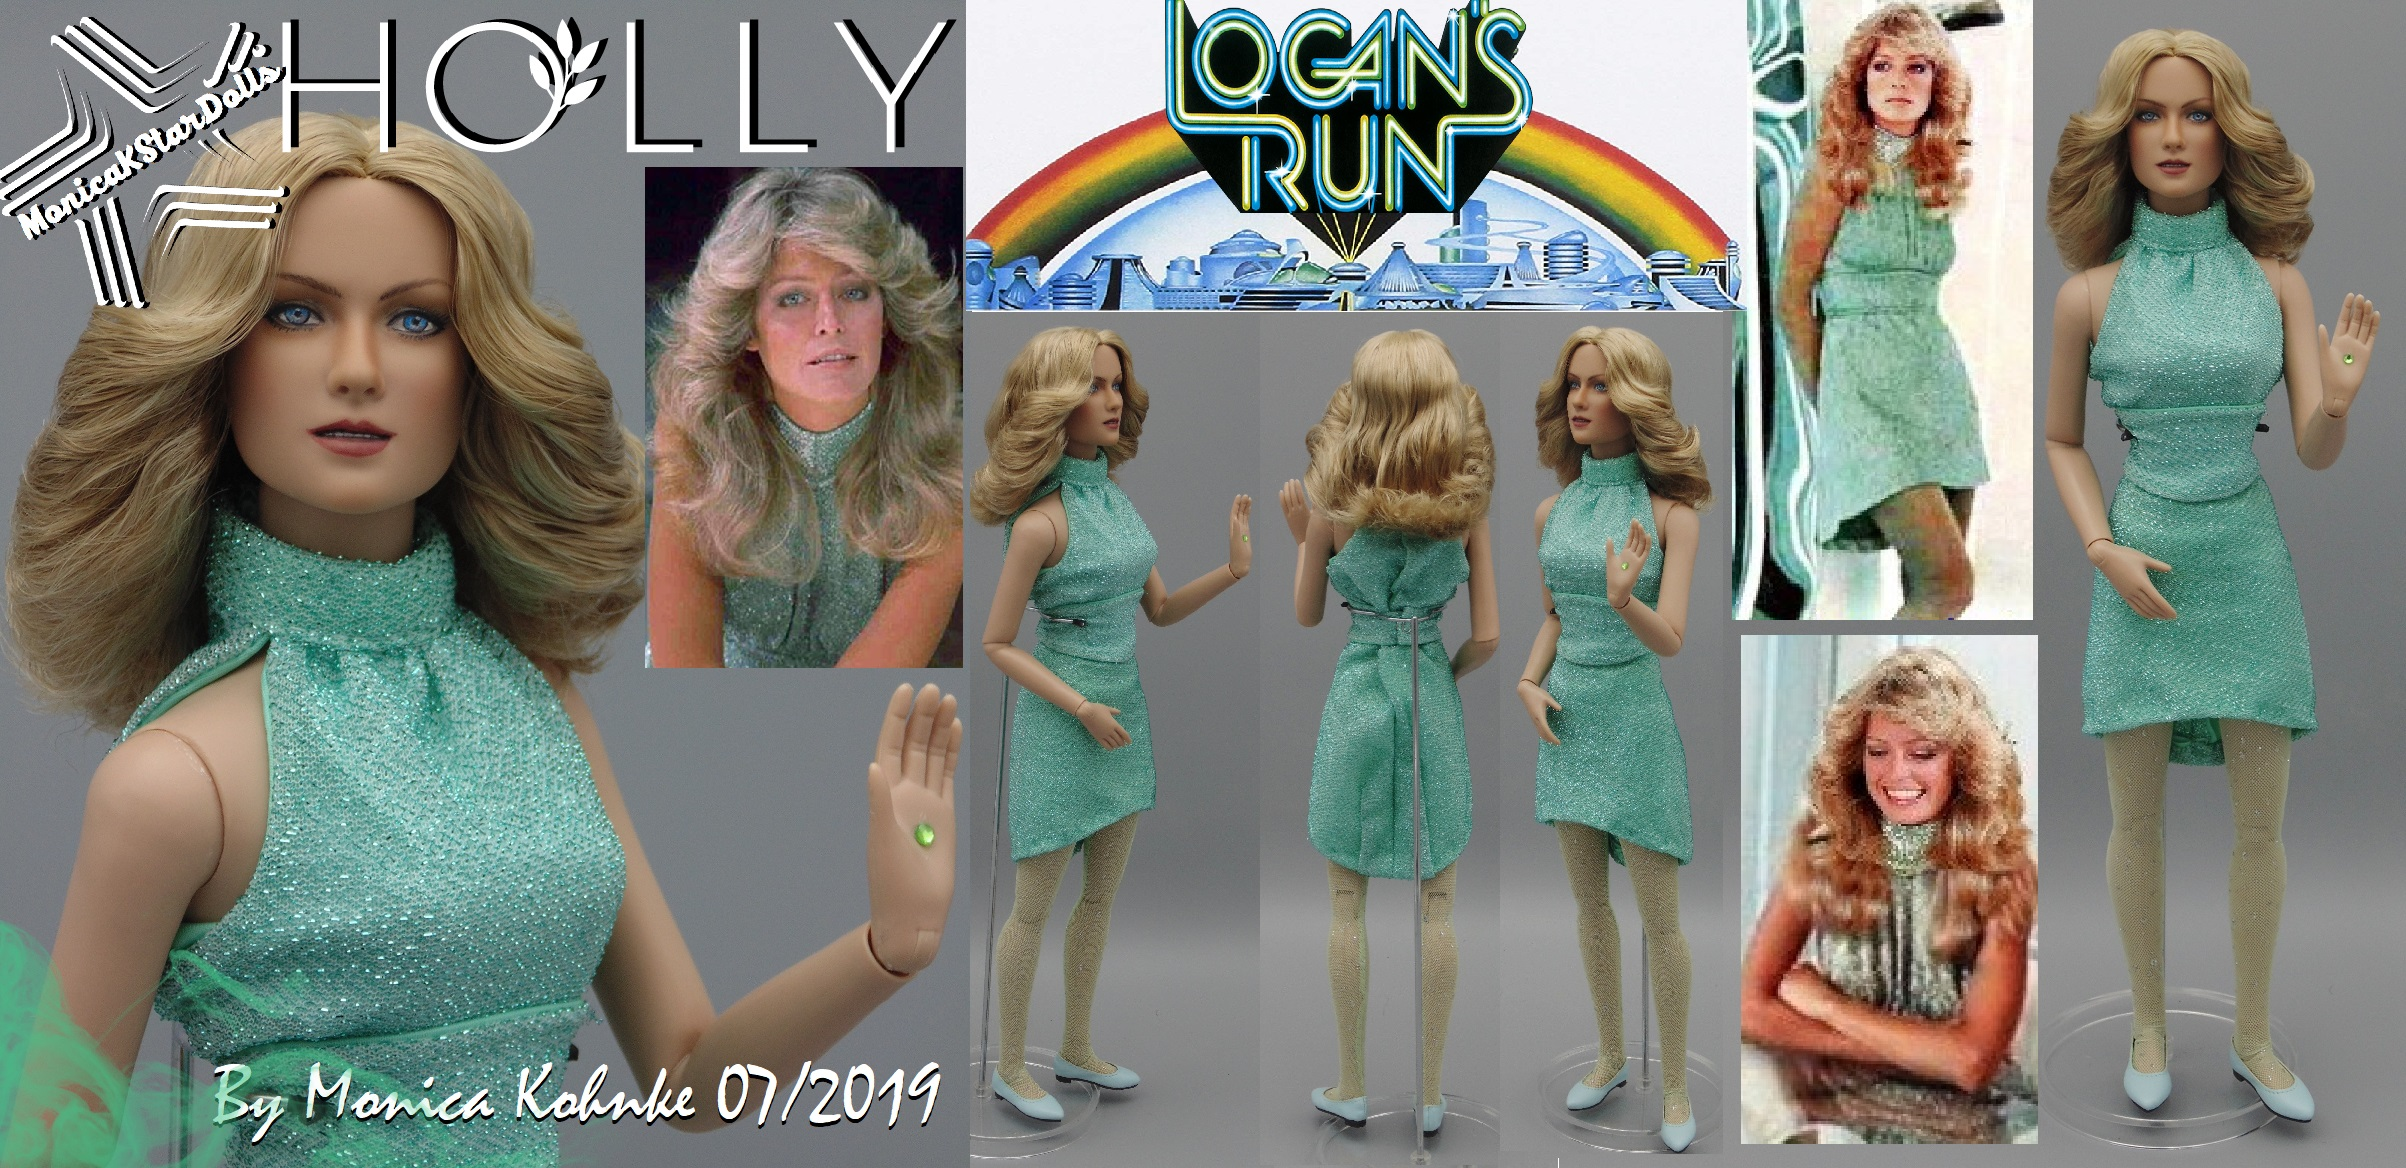 Holly Logan's Run